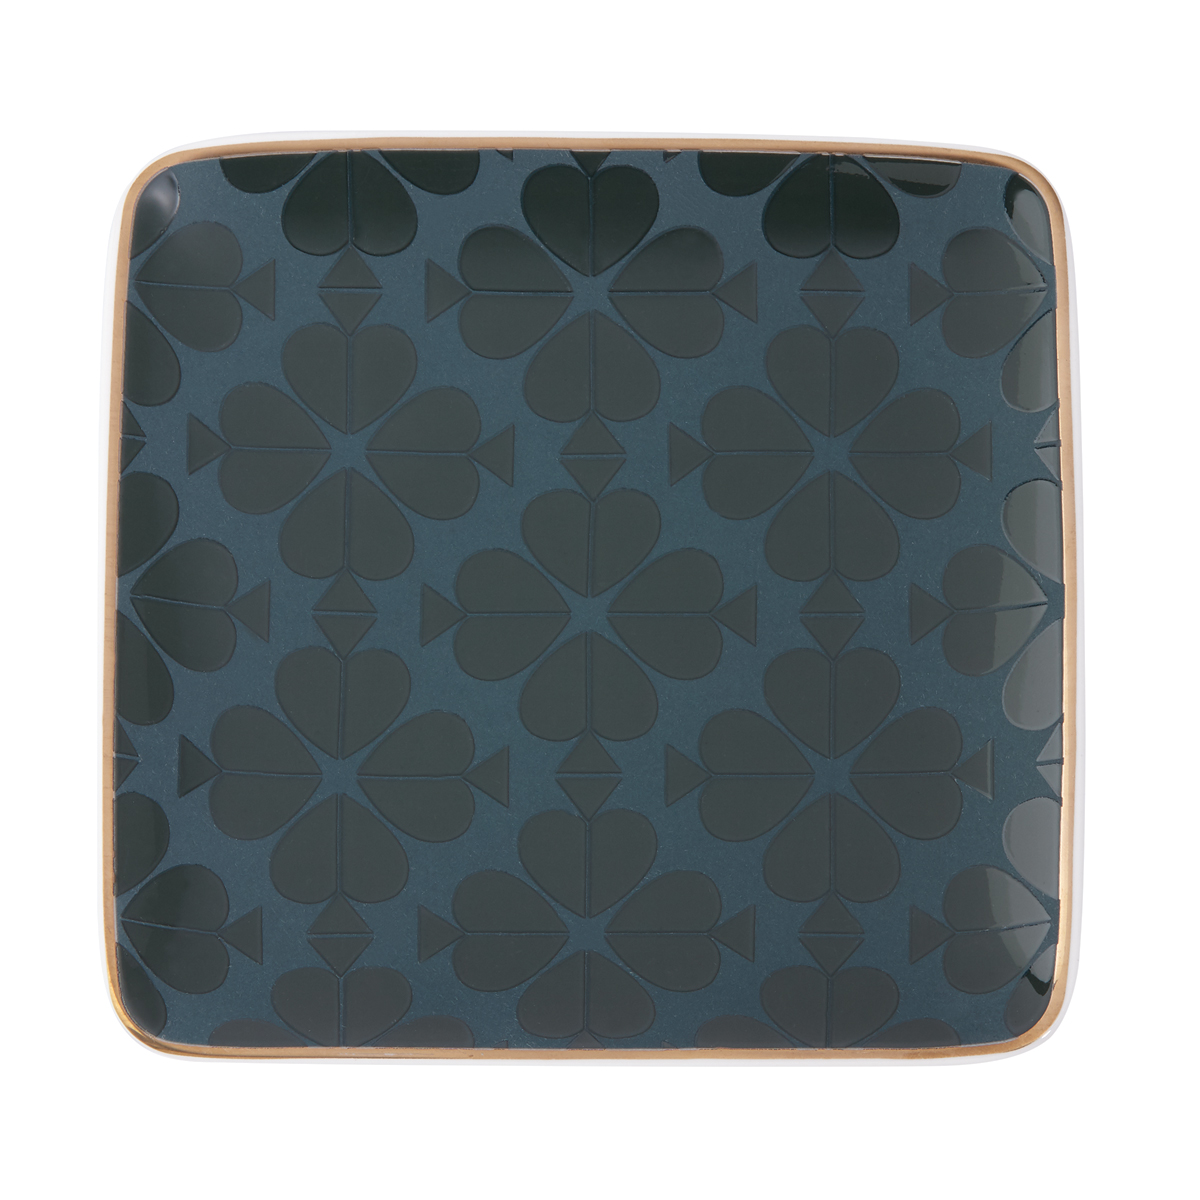 Kate Spade China by Lenox, Spade St Square Dish Clover